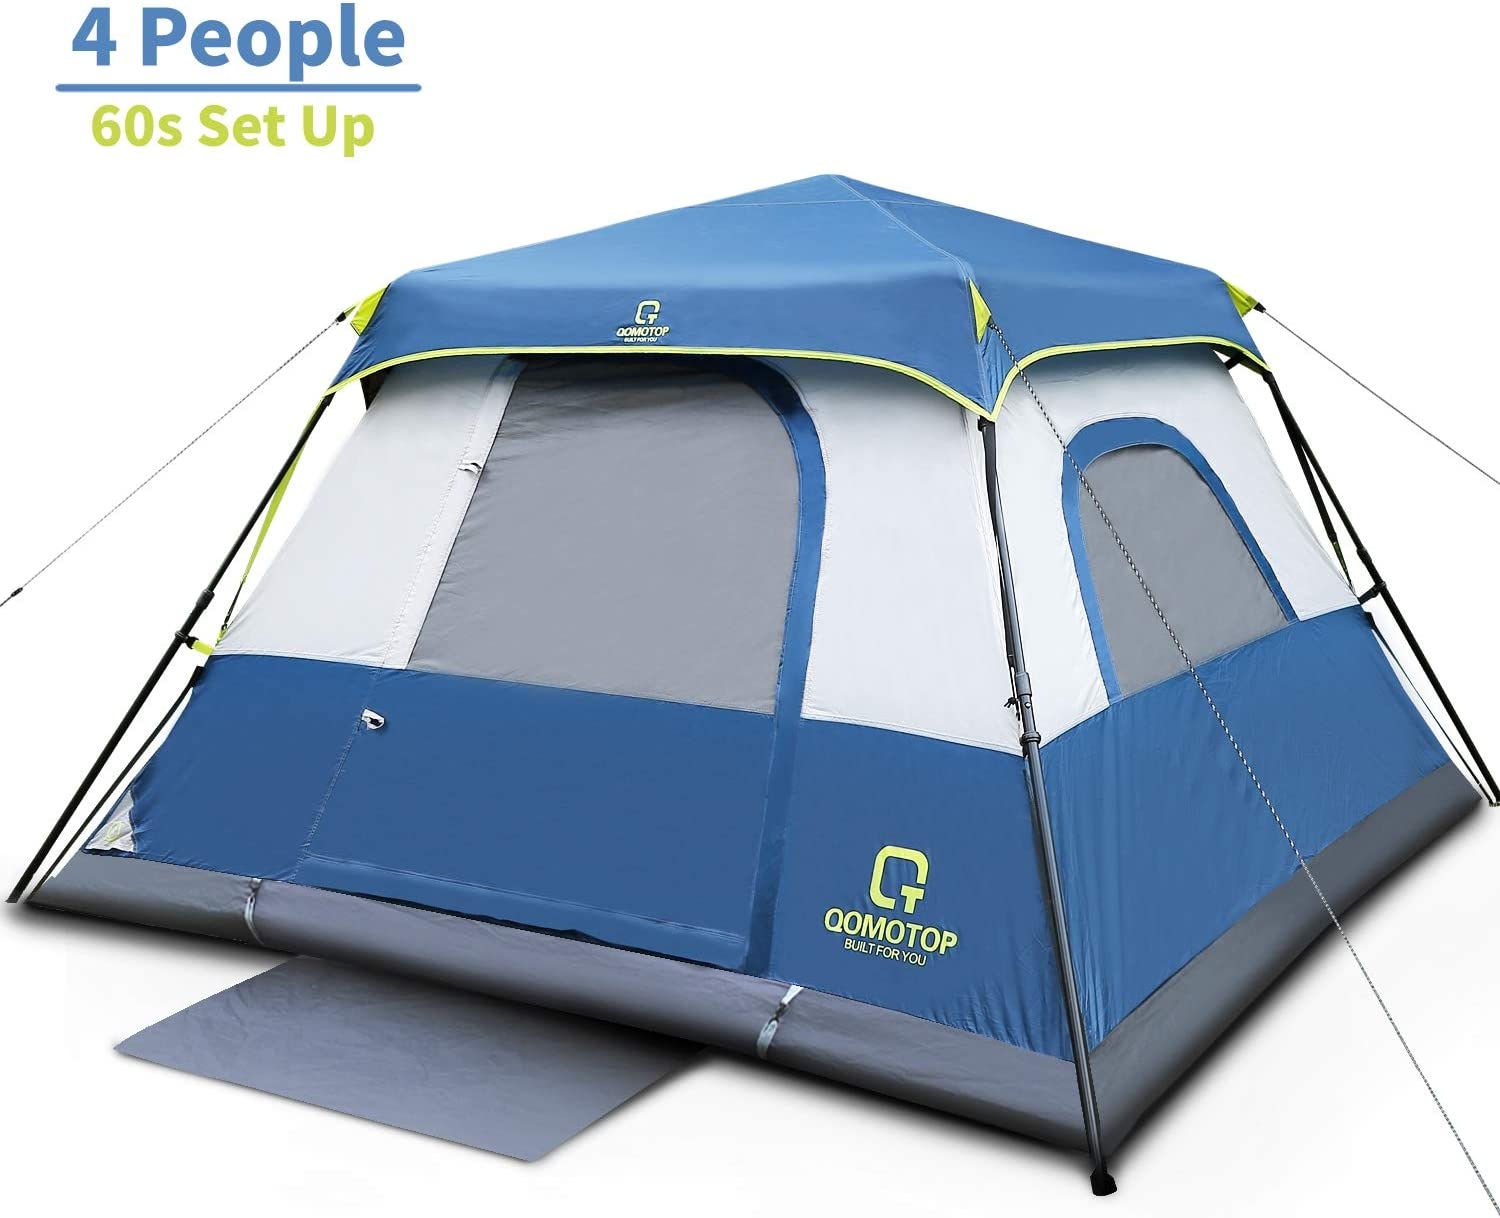 OT QOMOTOP Tents, 4/6/8/10 Person 60 Seconds Set Up Camping Tent, Waterproof Pop Up Tent with Top Rainfly, Instant Cabin Tent, Advanced Venting Design, Provide Gate Mat